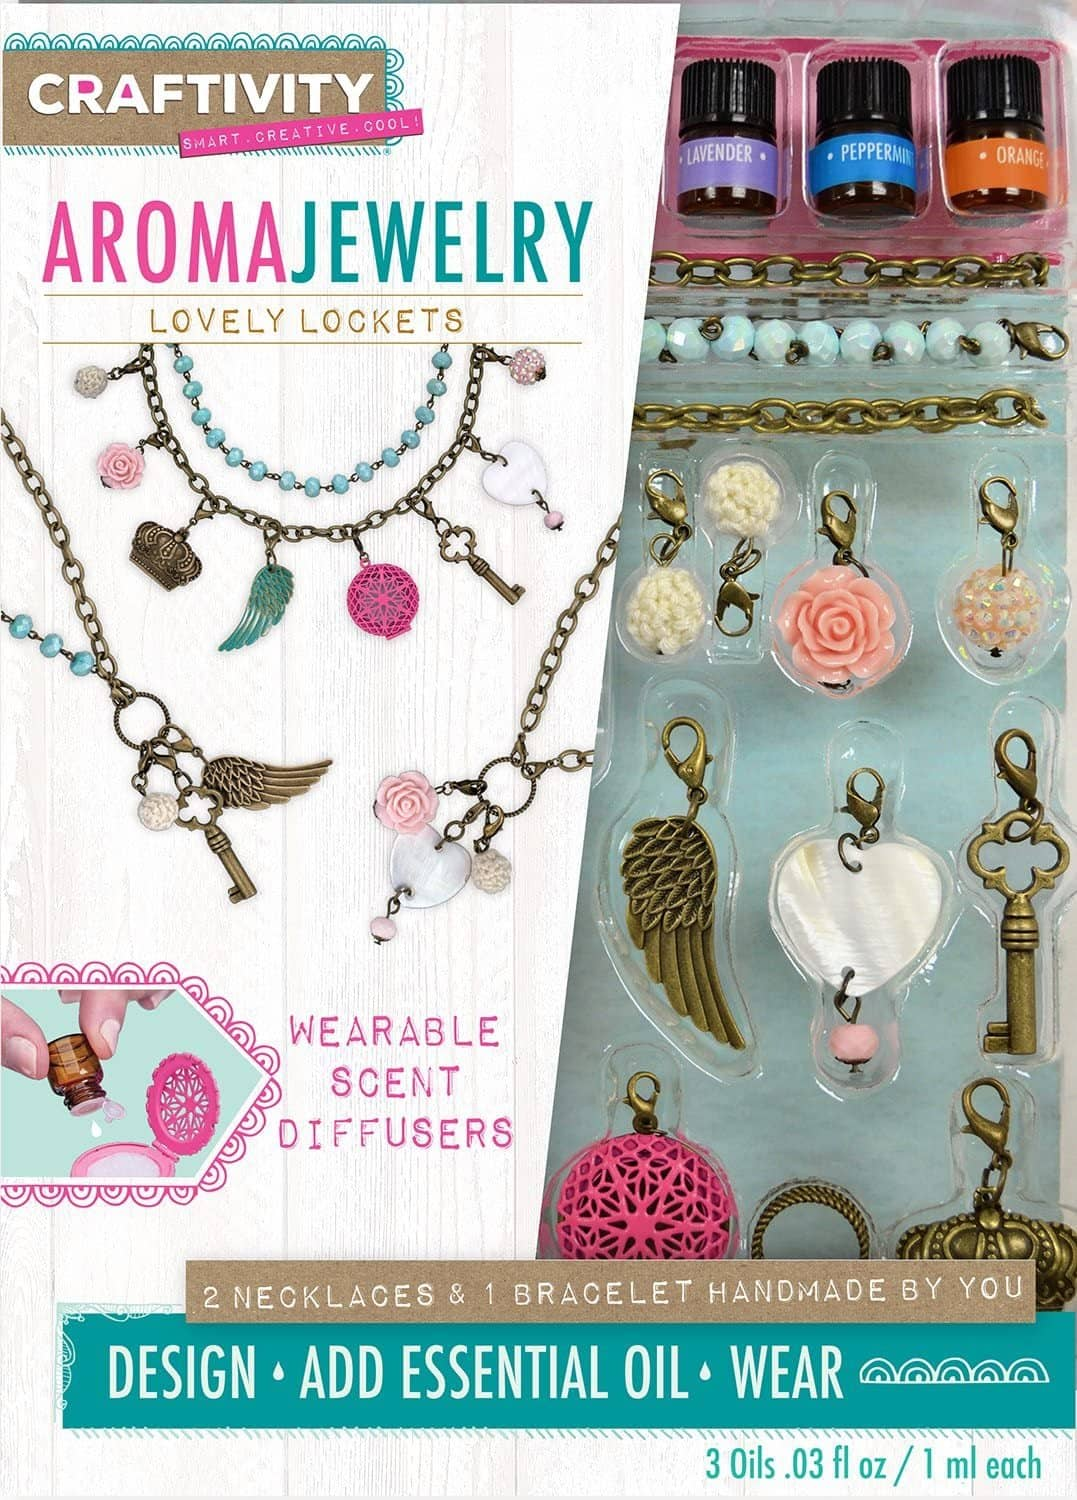 Lovely Lockets Aroma Jewelry-Kidding Around NYC